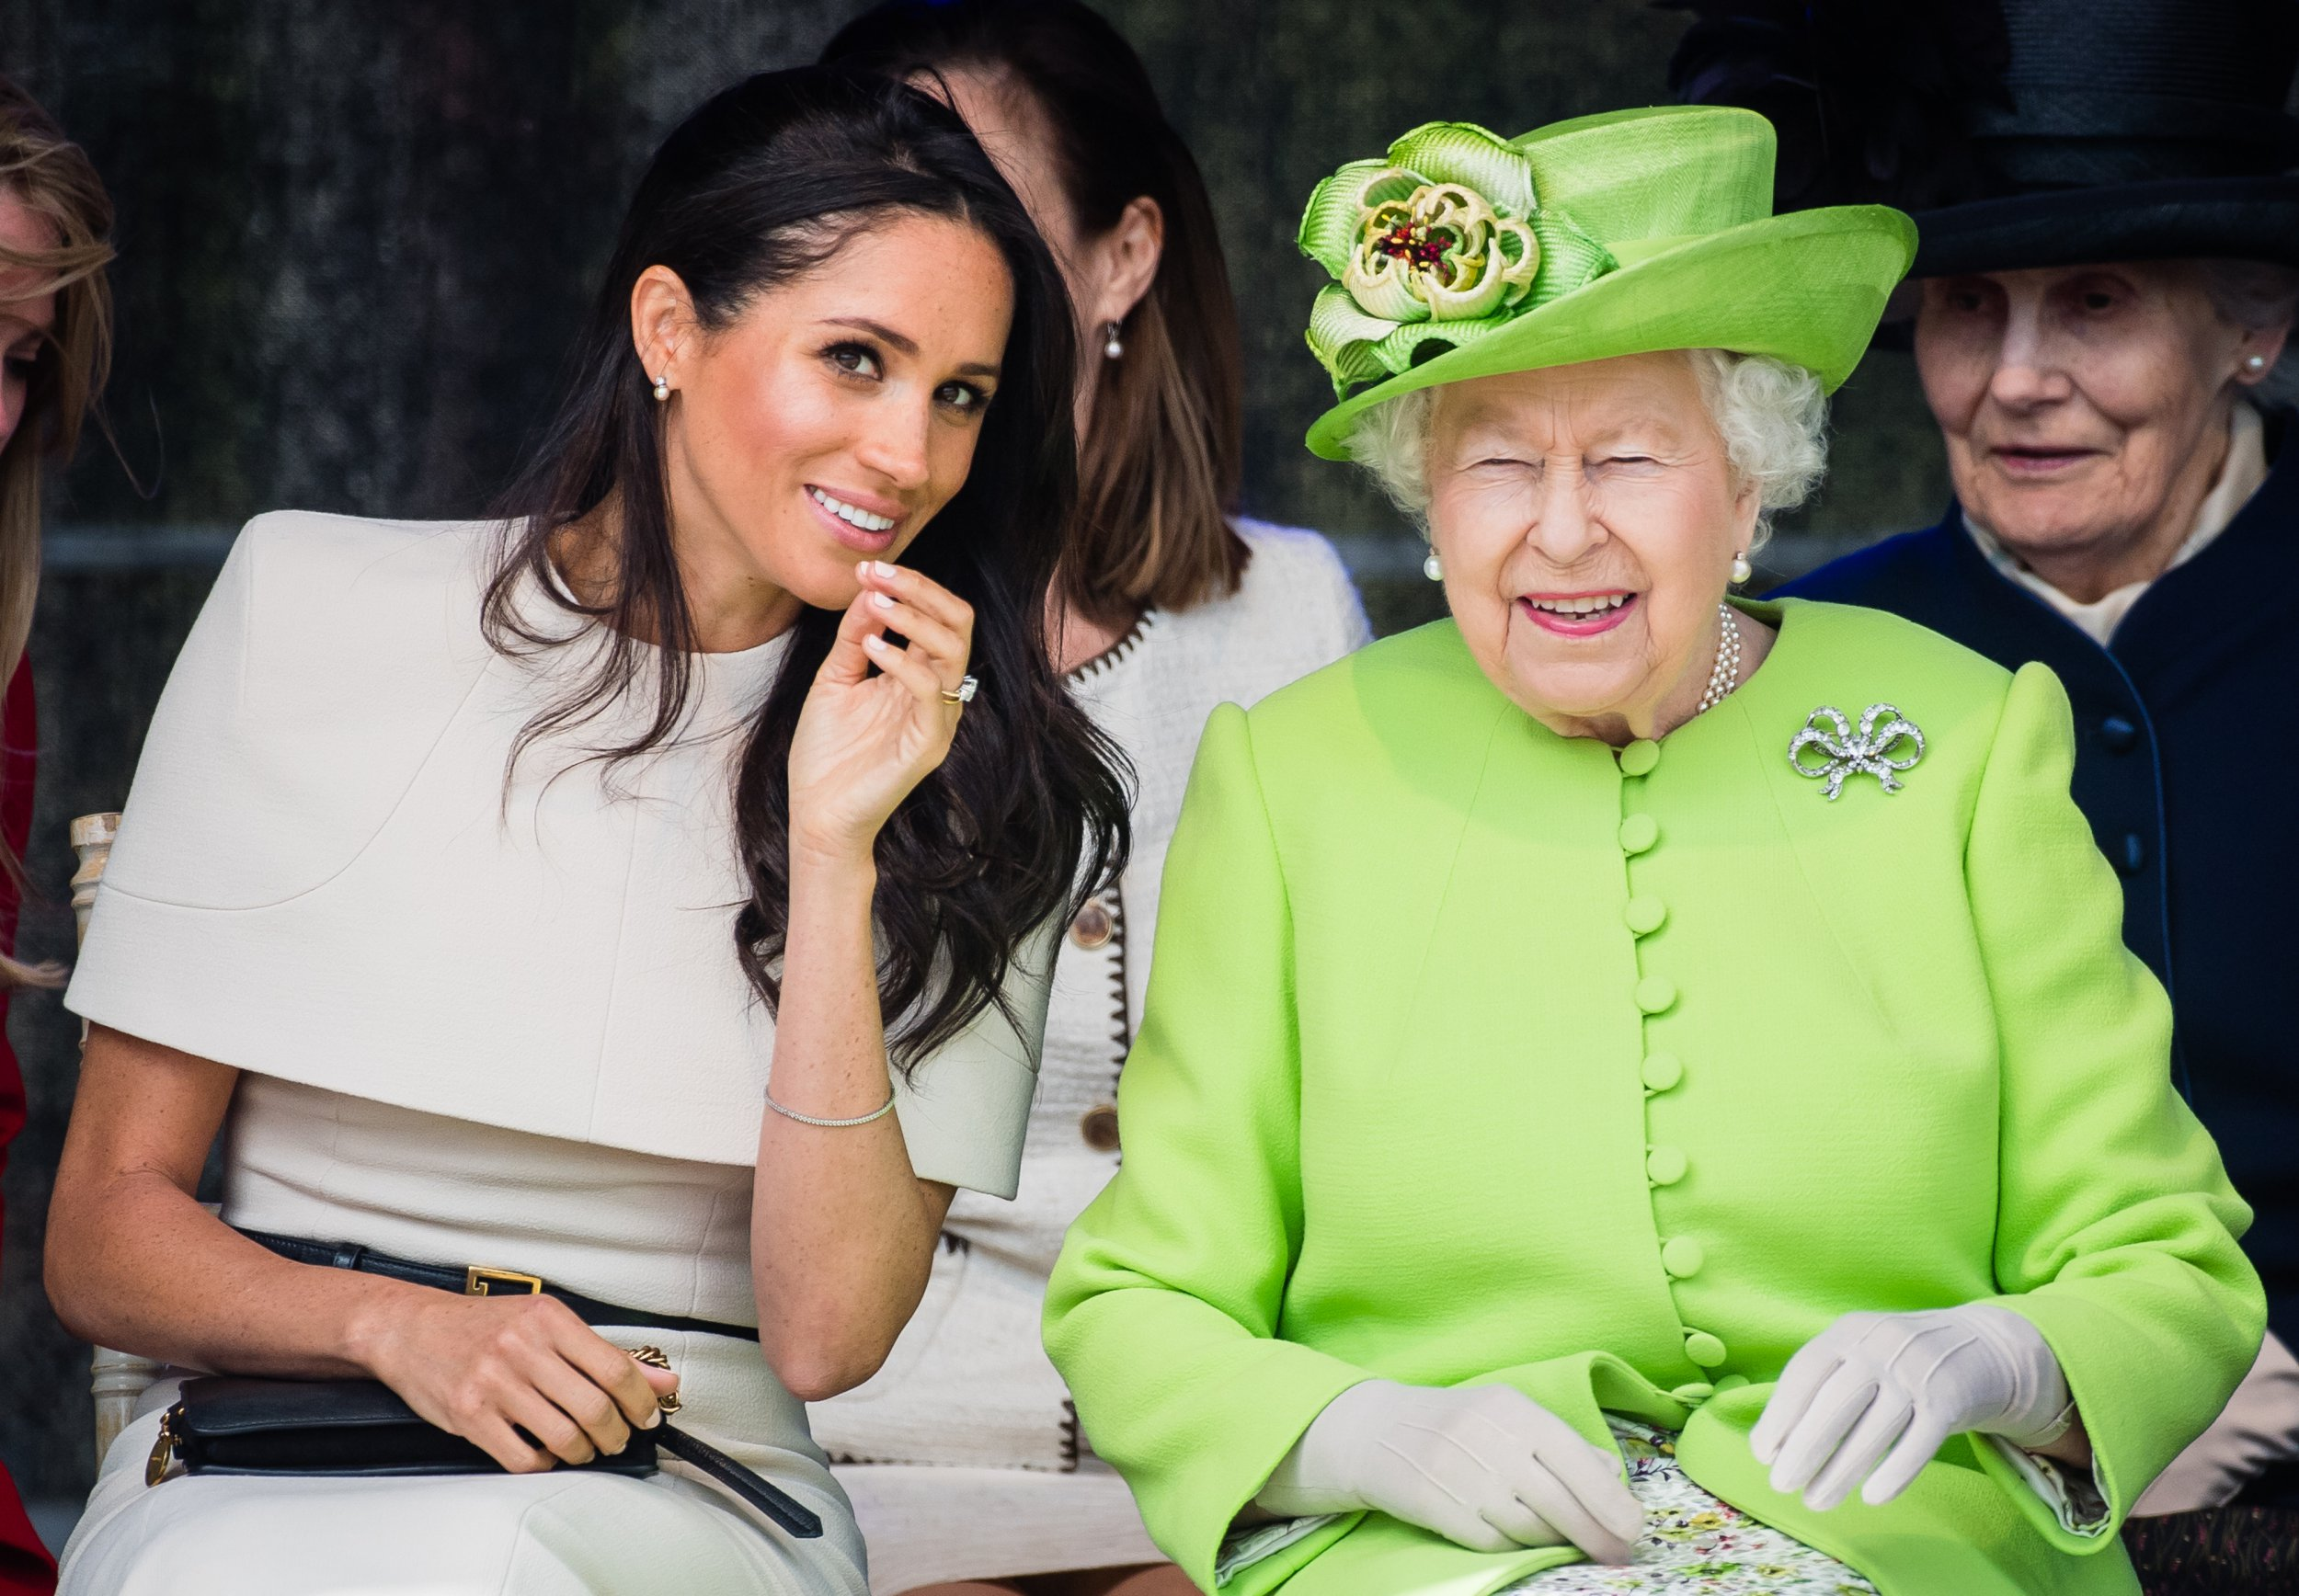 Queen stopped Meghan Markle from wearing tiara Diana wore